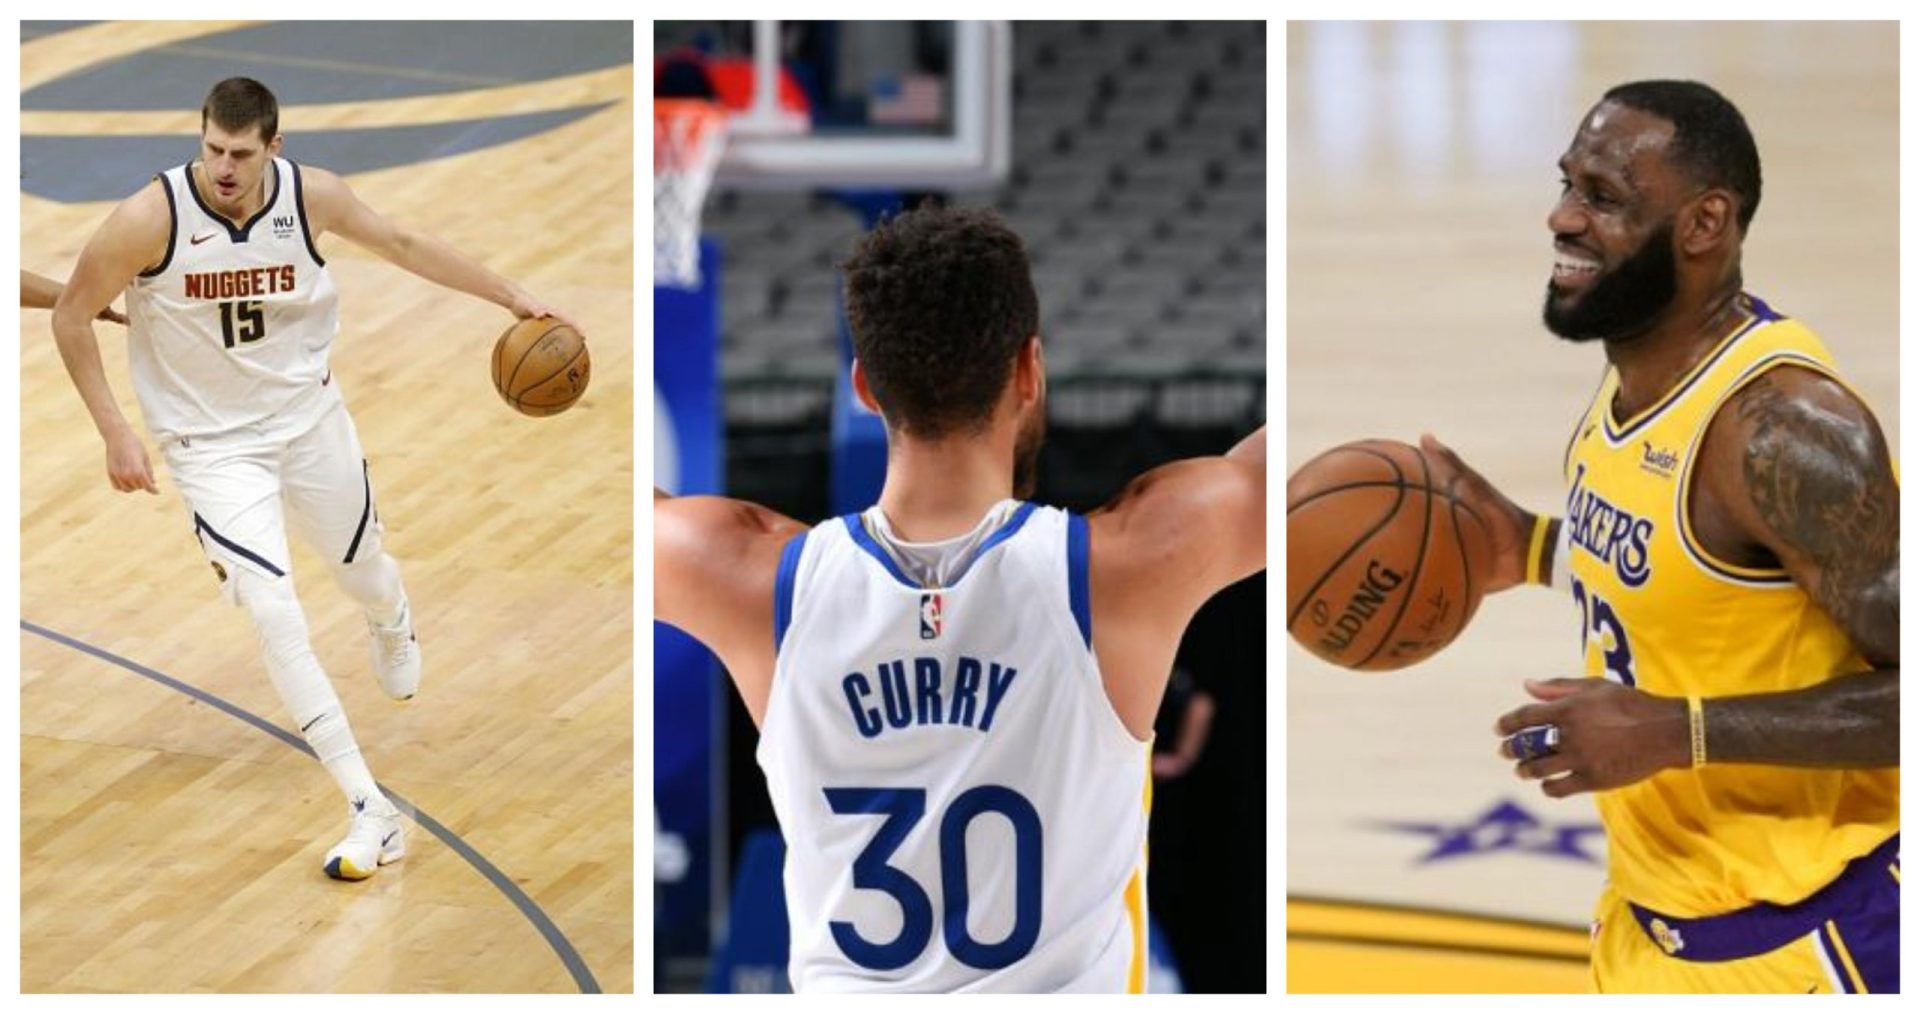 NBA Week 7 Feb 6 results: Scores, standings, match summary and highlights - THE SPORTS ROOM